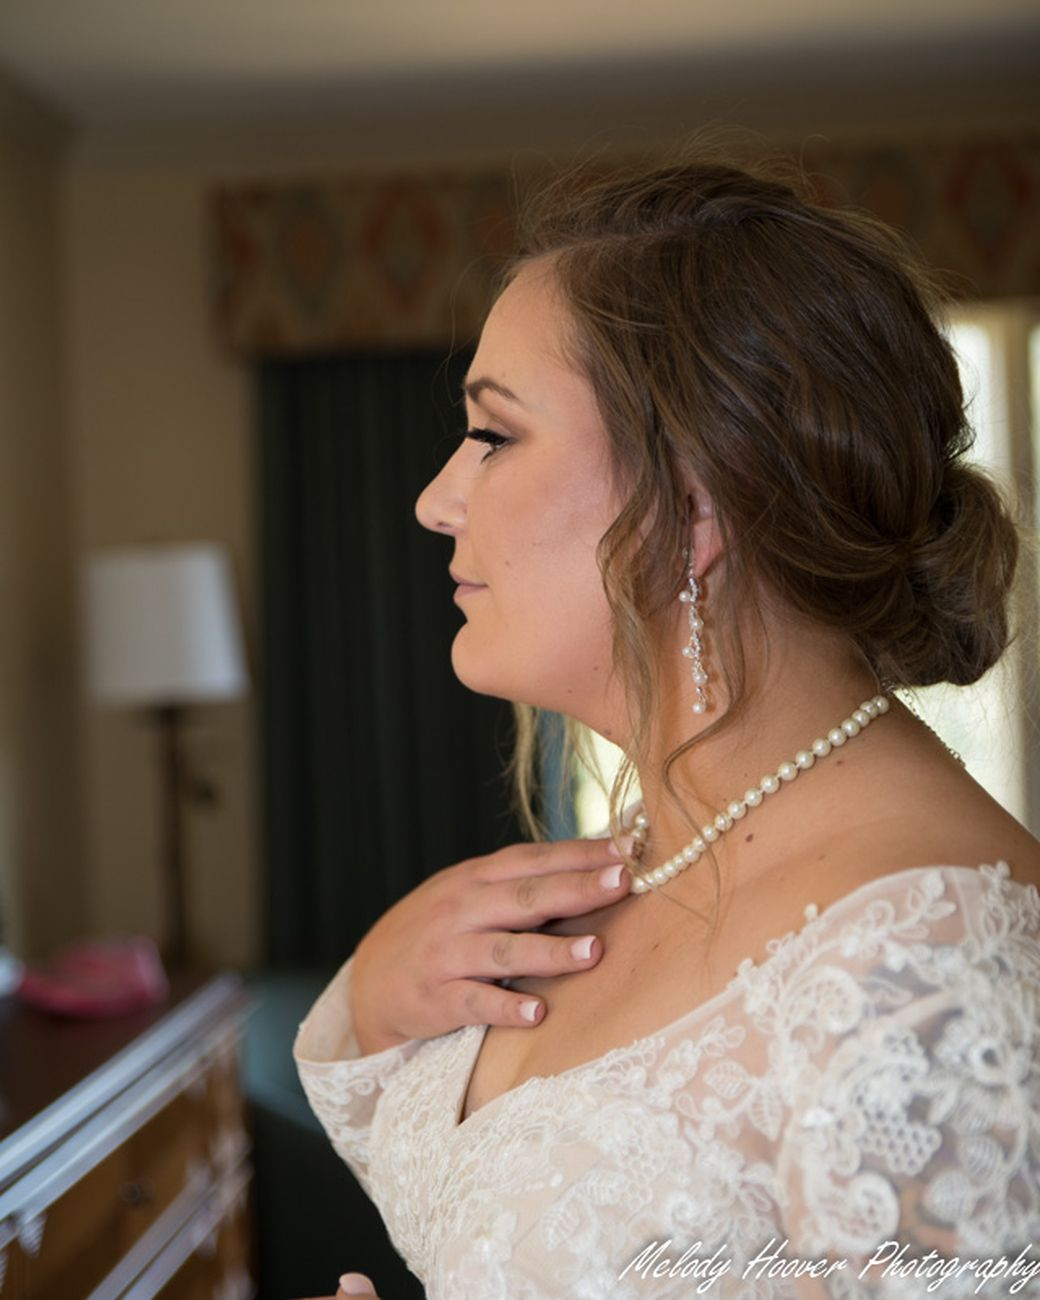 The Bride takes one last look in the mirror to check all the details before her entrance.